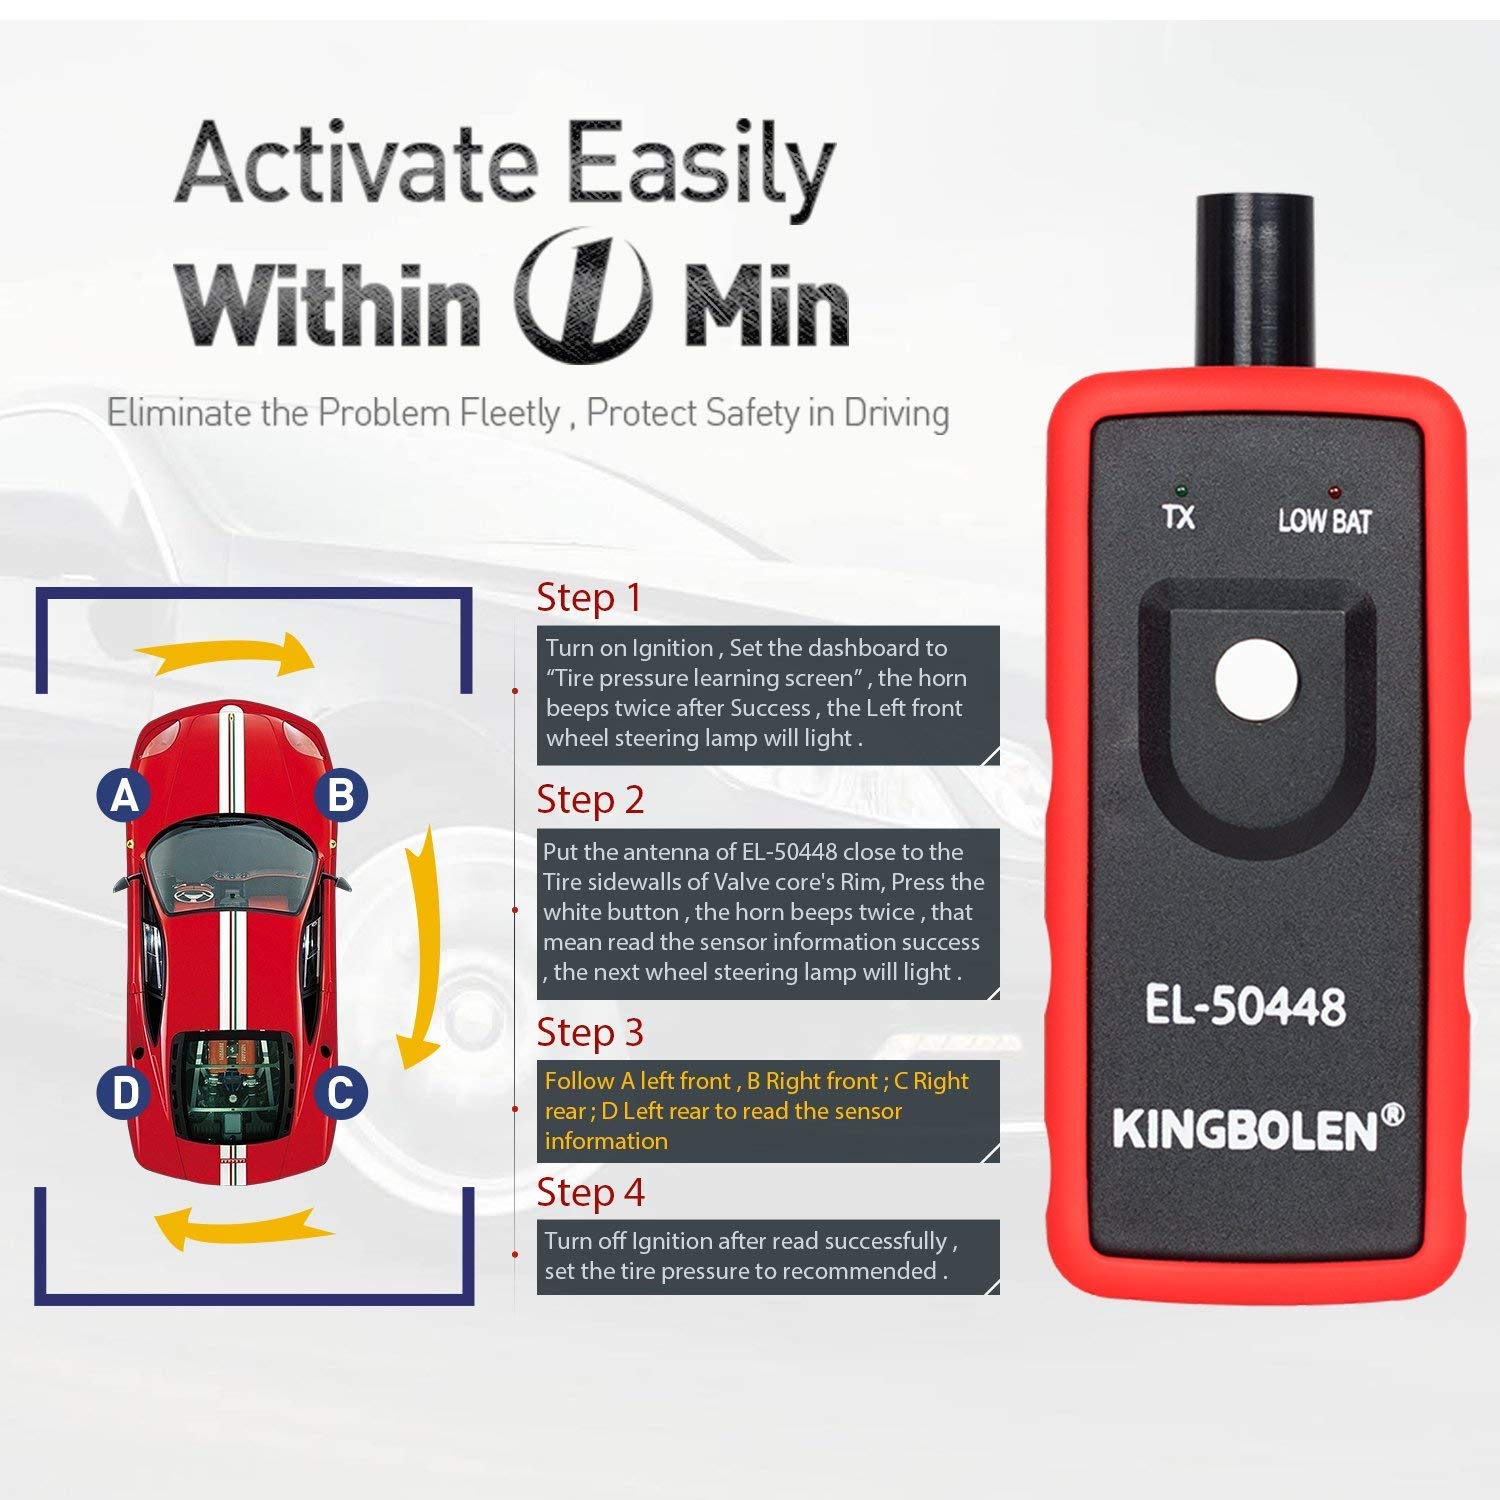 LAUNCH X431 Creader CRP123 Automotive Diagnostic Scan Tool OBD2 Auto Code Reader Support ENG/TCM/ABS/SRS System Code Reader with EL-50448 TPMS Activation Relearn Tool by LAUNCH (Image #9)